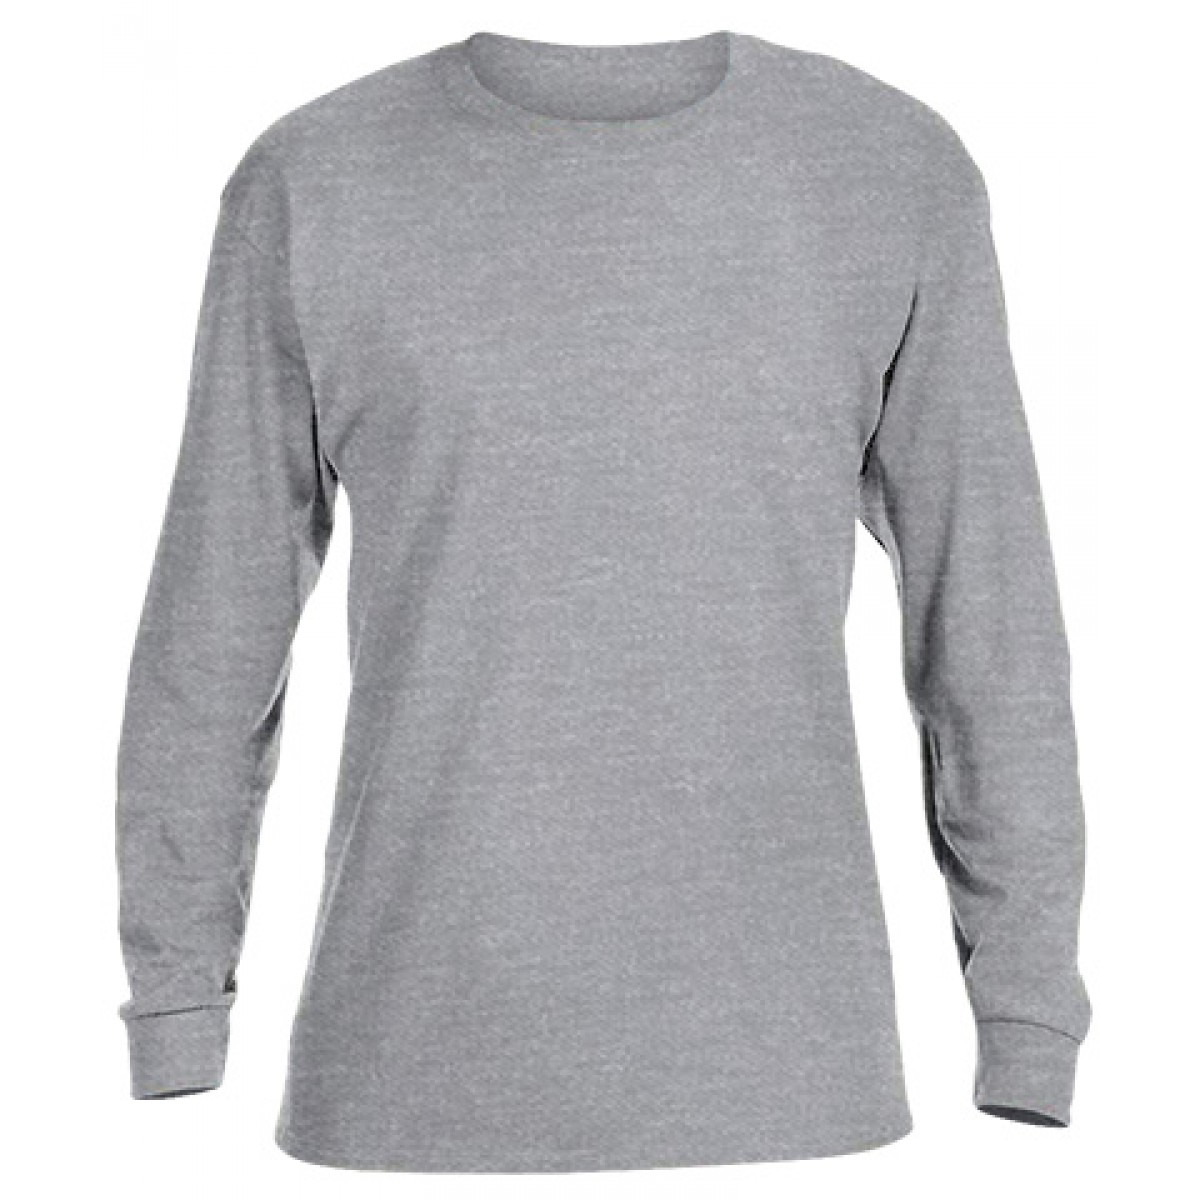 Basic Long Sleeve Crew Neck -Ash Gray-2XL